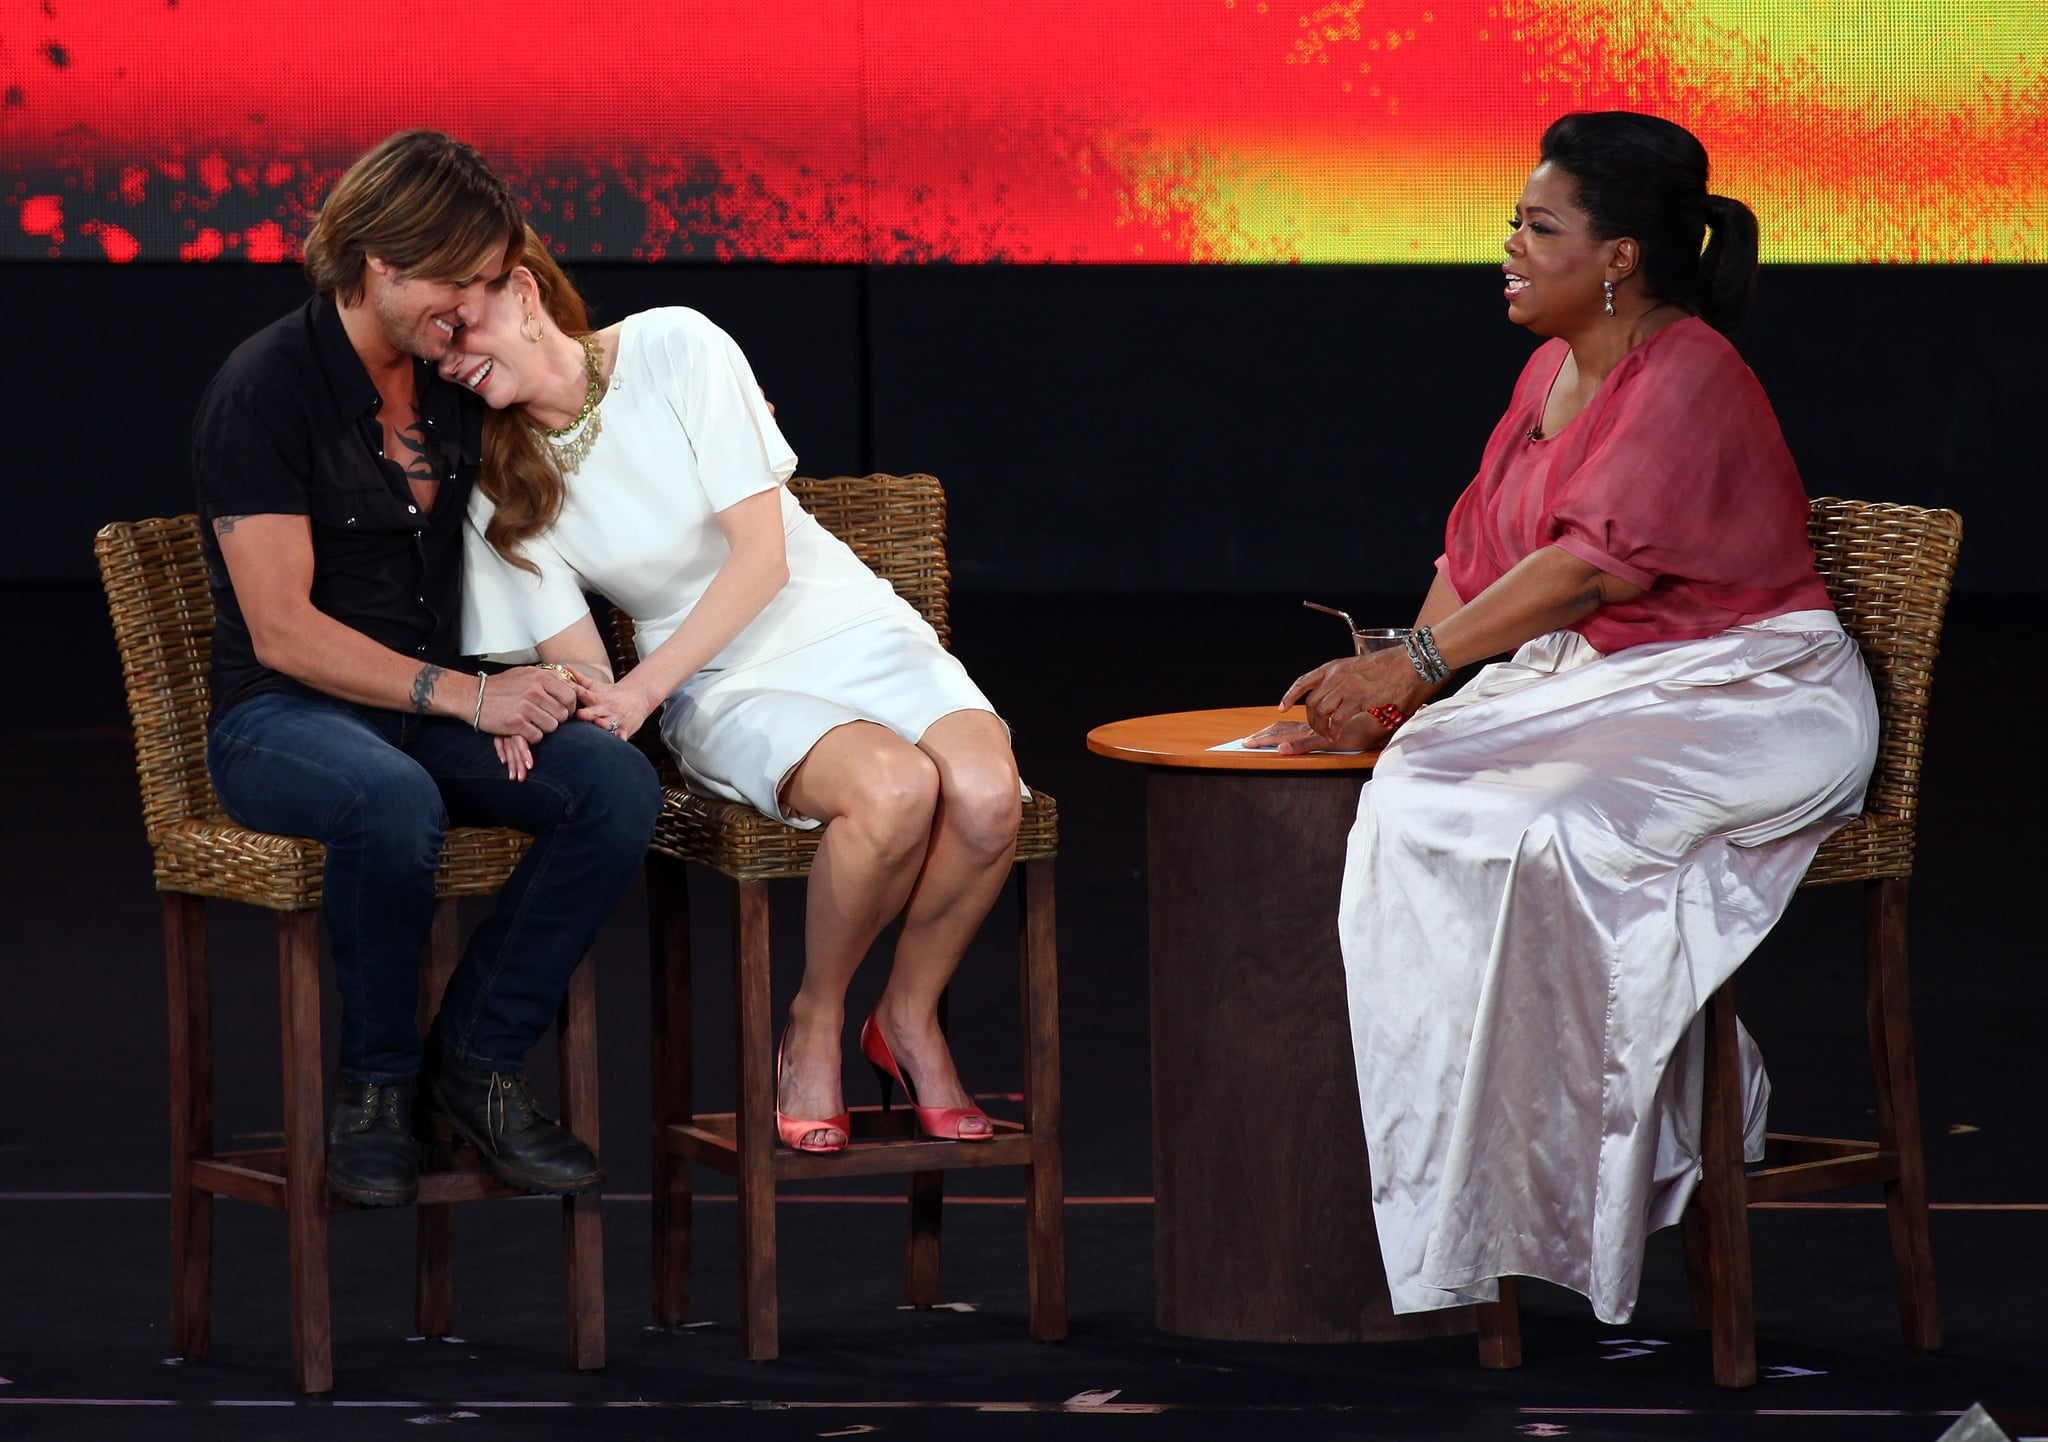 Nicole laughed onto Keith's shoulder while taping an interview with Oprah in Sydney back in December 2010.